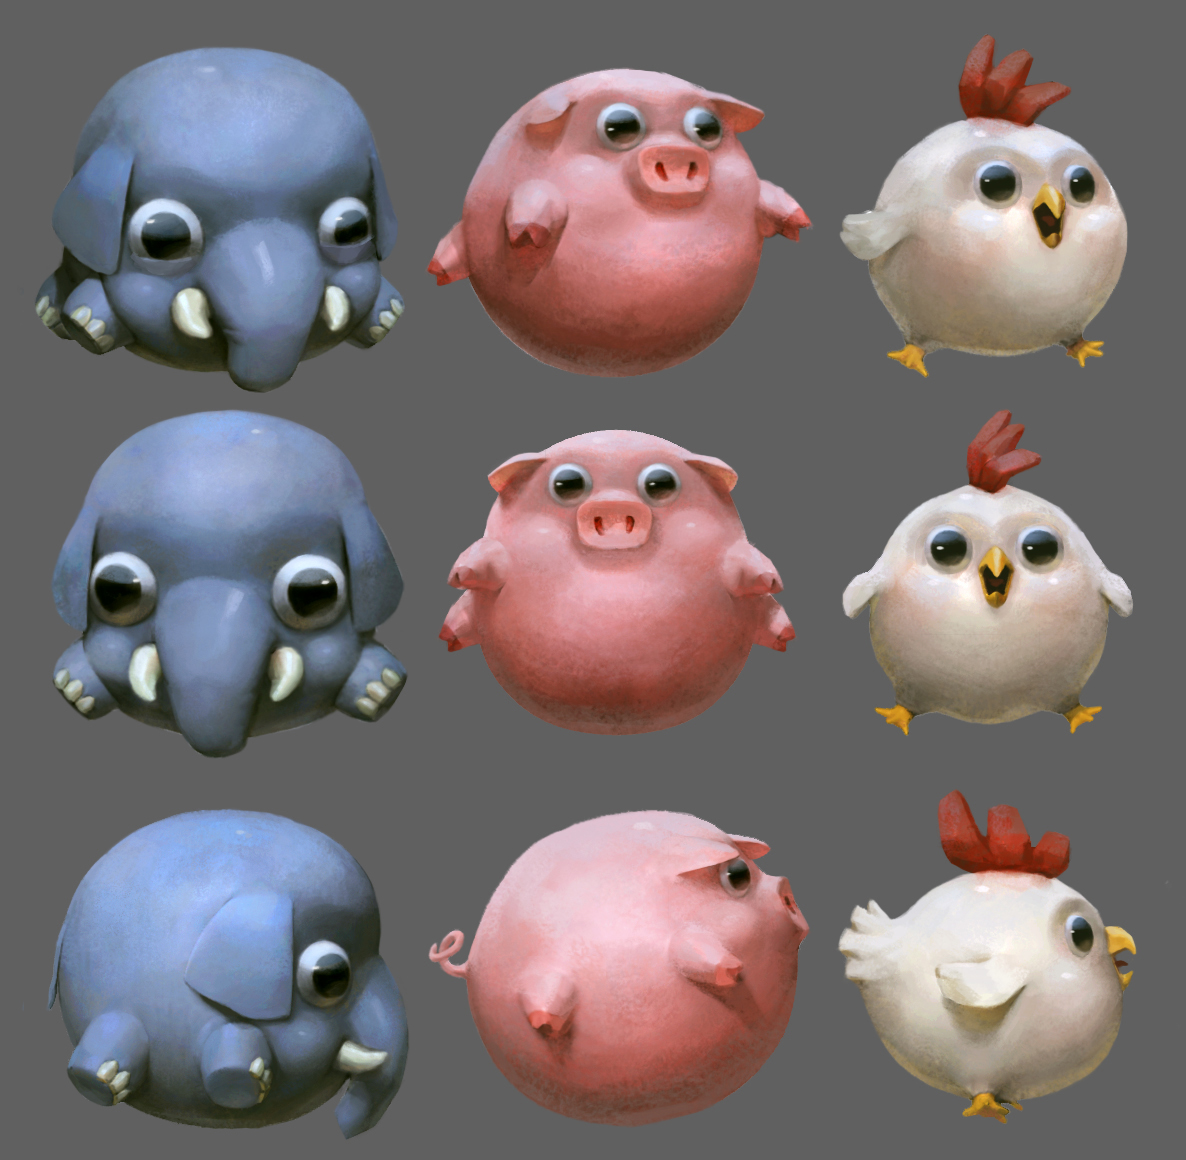 fat_animals_paintover_06.jpg